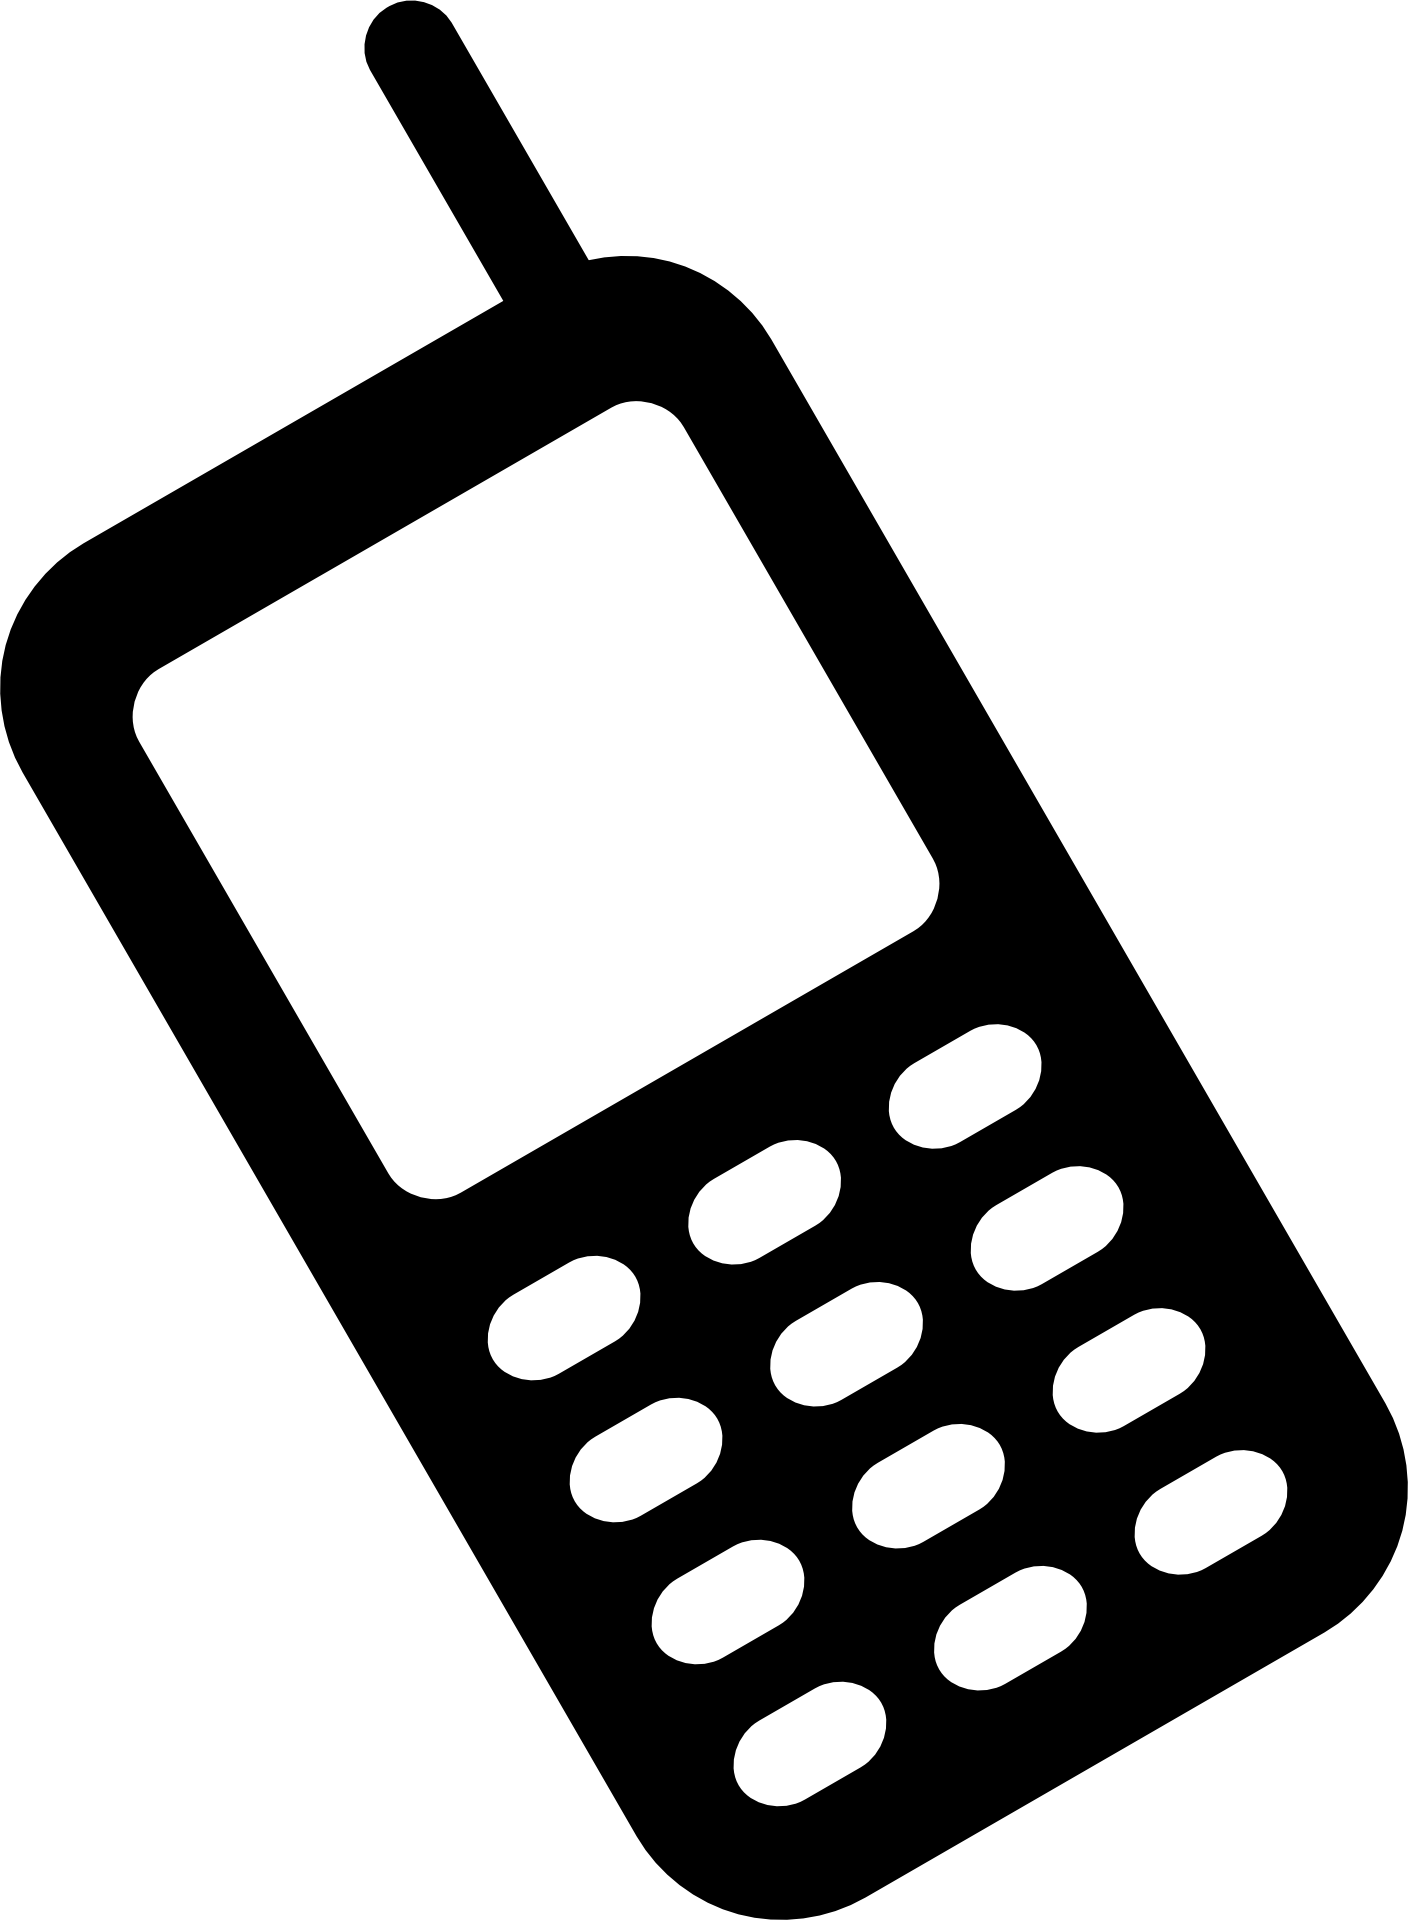 Telephone clipart phone computer. Iphone smartphone icons clip